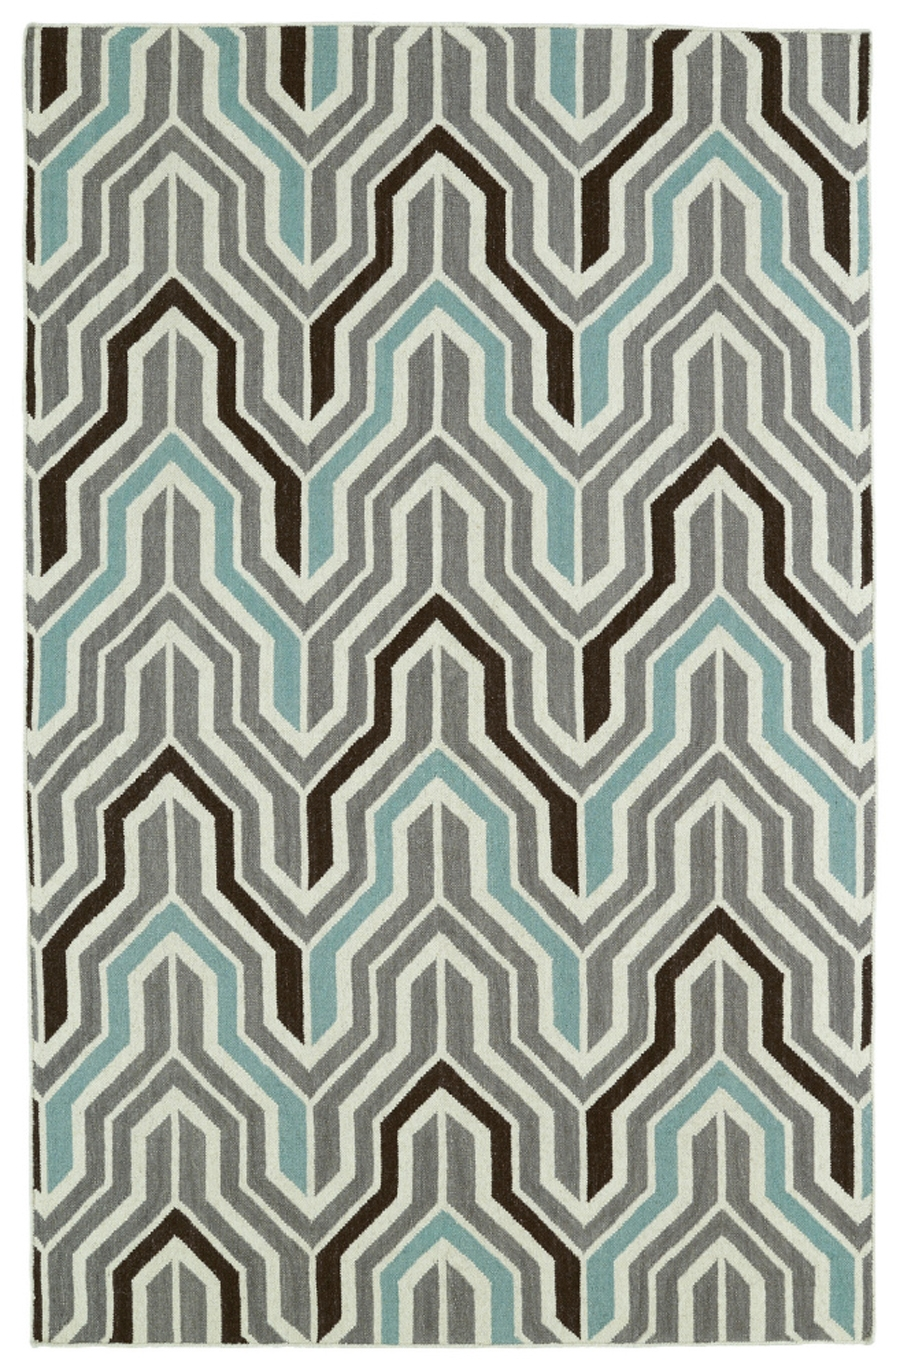 Kaleen Glam GLA03 75 Grey Area Rug